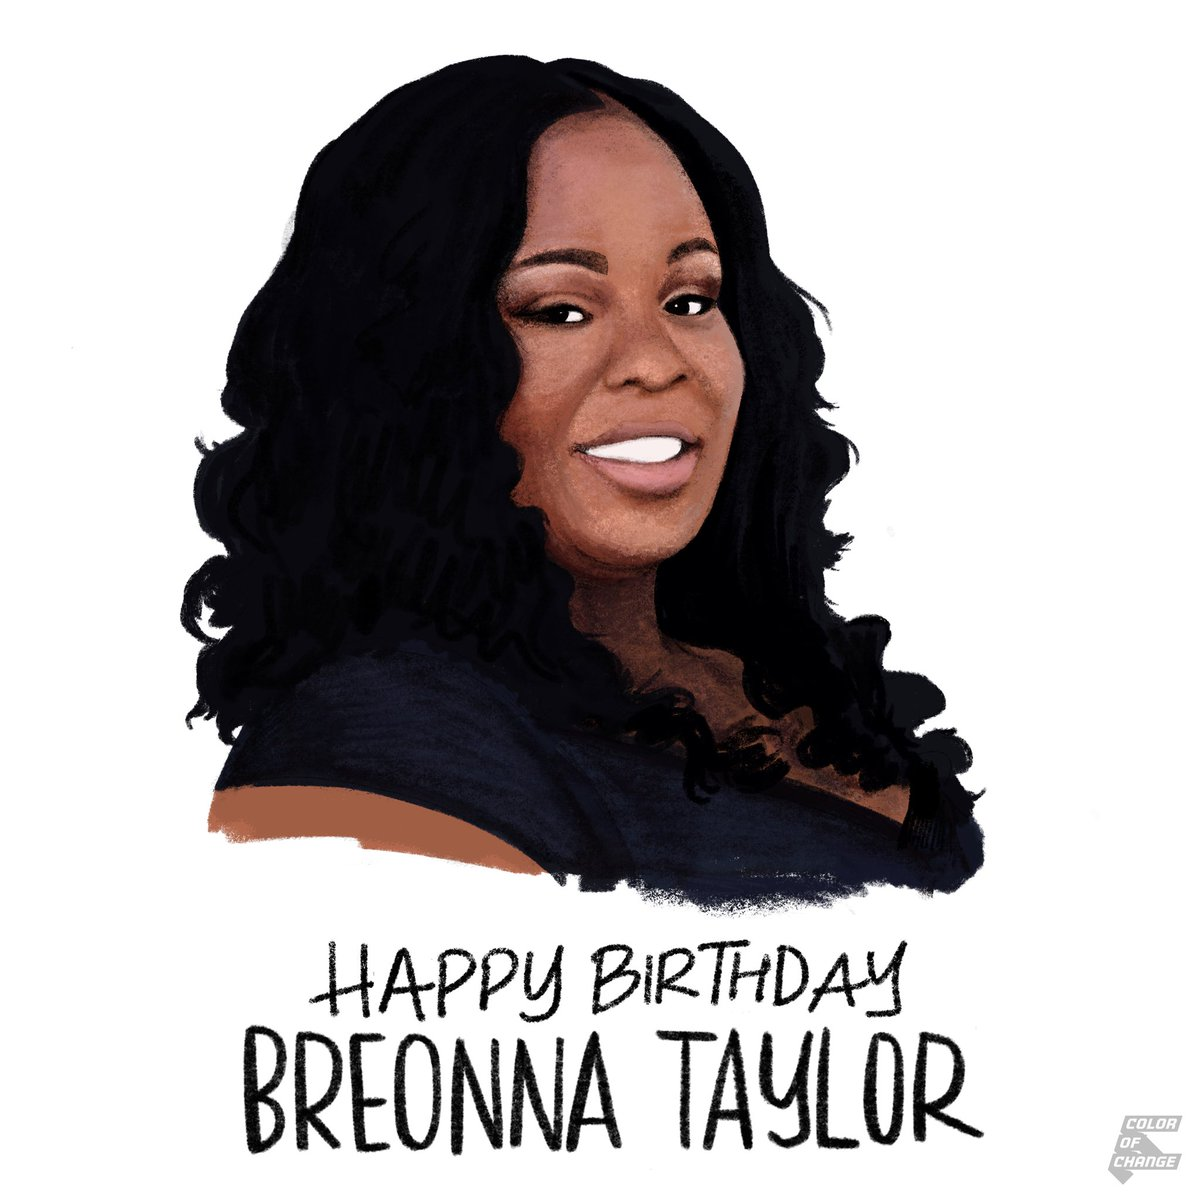 #SayHerName #BreonnaTaylor should be turning 27. An essential worker who wasn't treated essential by police who murdered her. We can't talk about police brutality w/o talking about countless Black women who are killed & often forgotten. Demand #JusticeForBre. Text ENOUGH to 55156 https://t.co/7kxCokGk1O